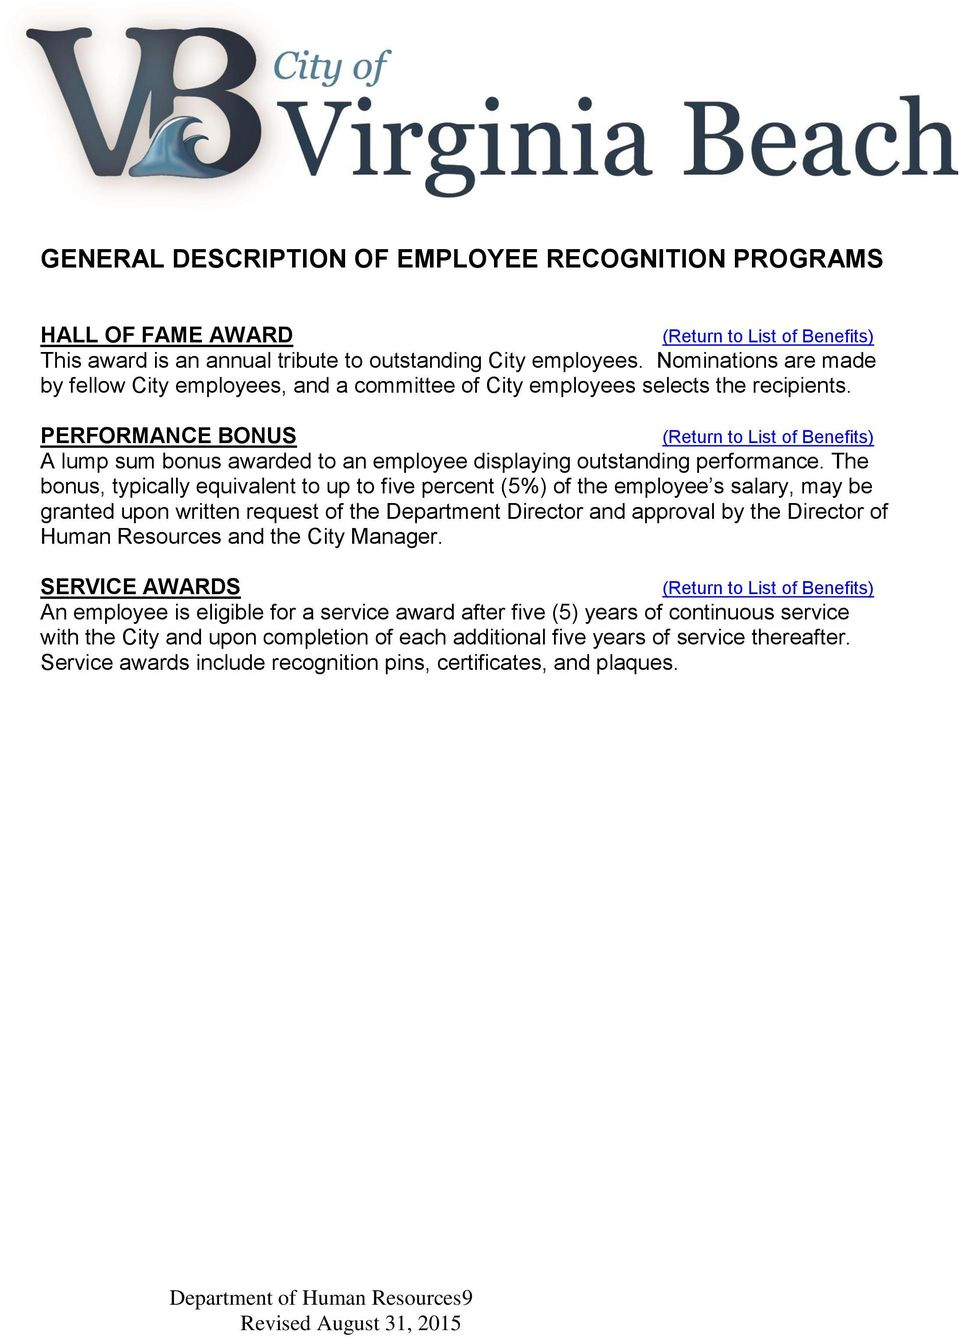 The bonus, typically equivalent to up to five percent (5%) of the employee s salary, may be granted upon written request of the Department Director and approval by the Director of Human Resources and